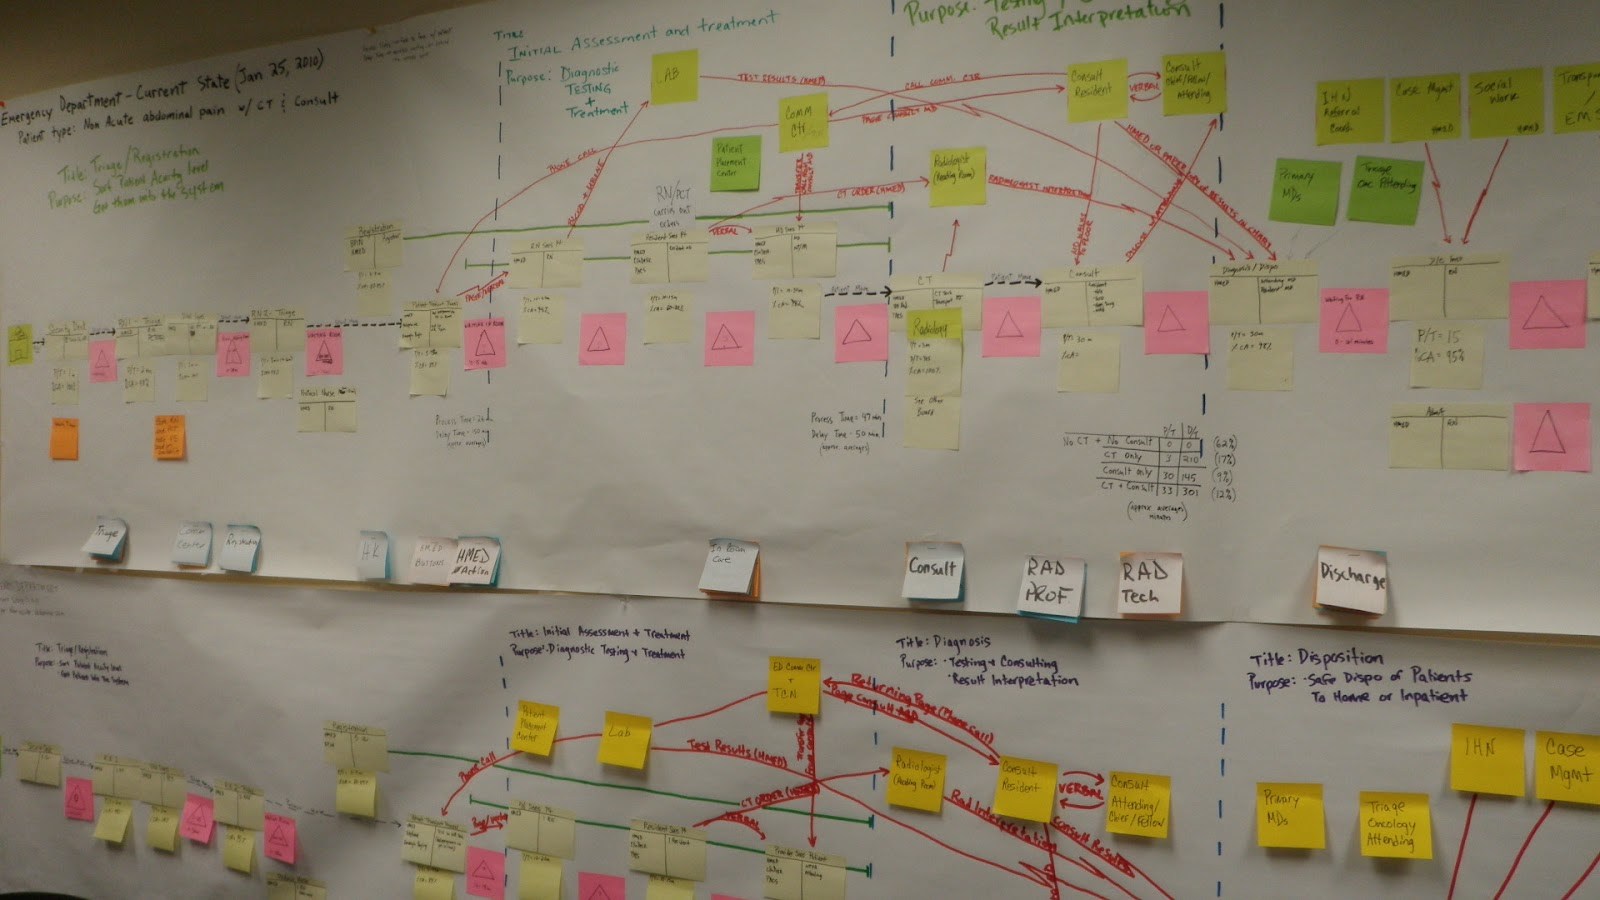 Process visualizations mapped out in a conference room